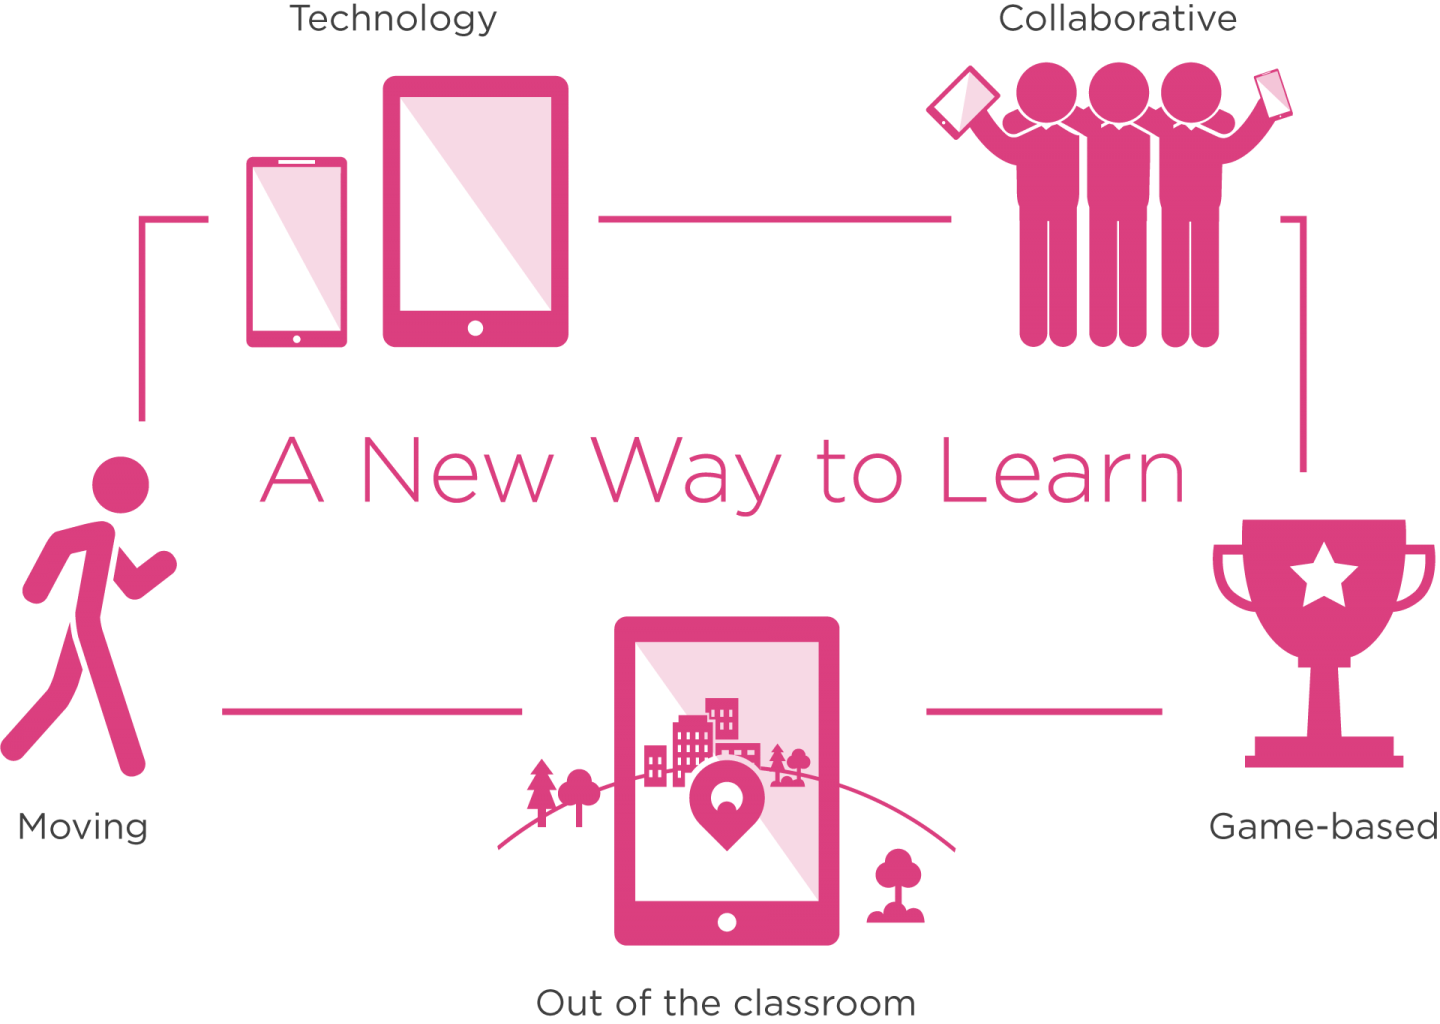 <p>Seppo - A new way to learn</p>